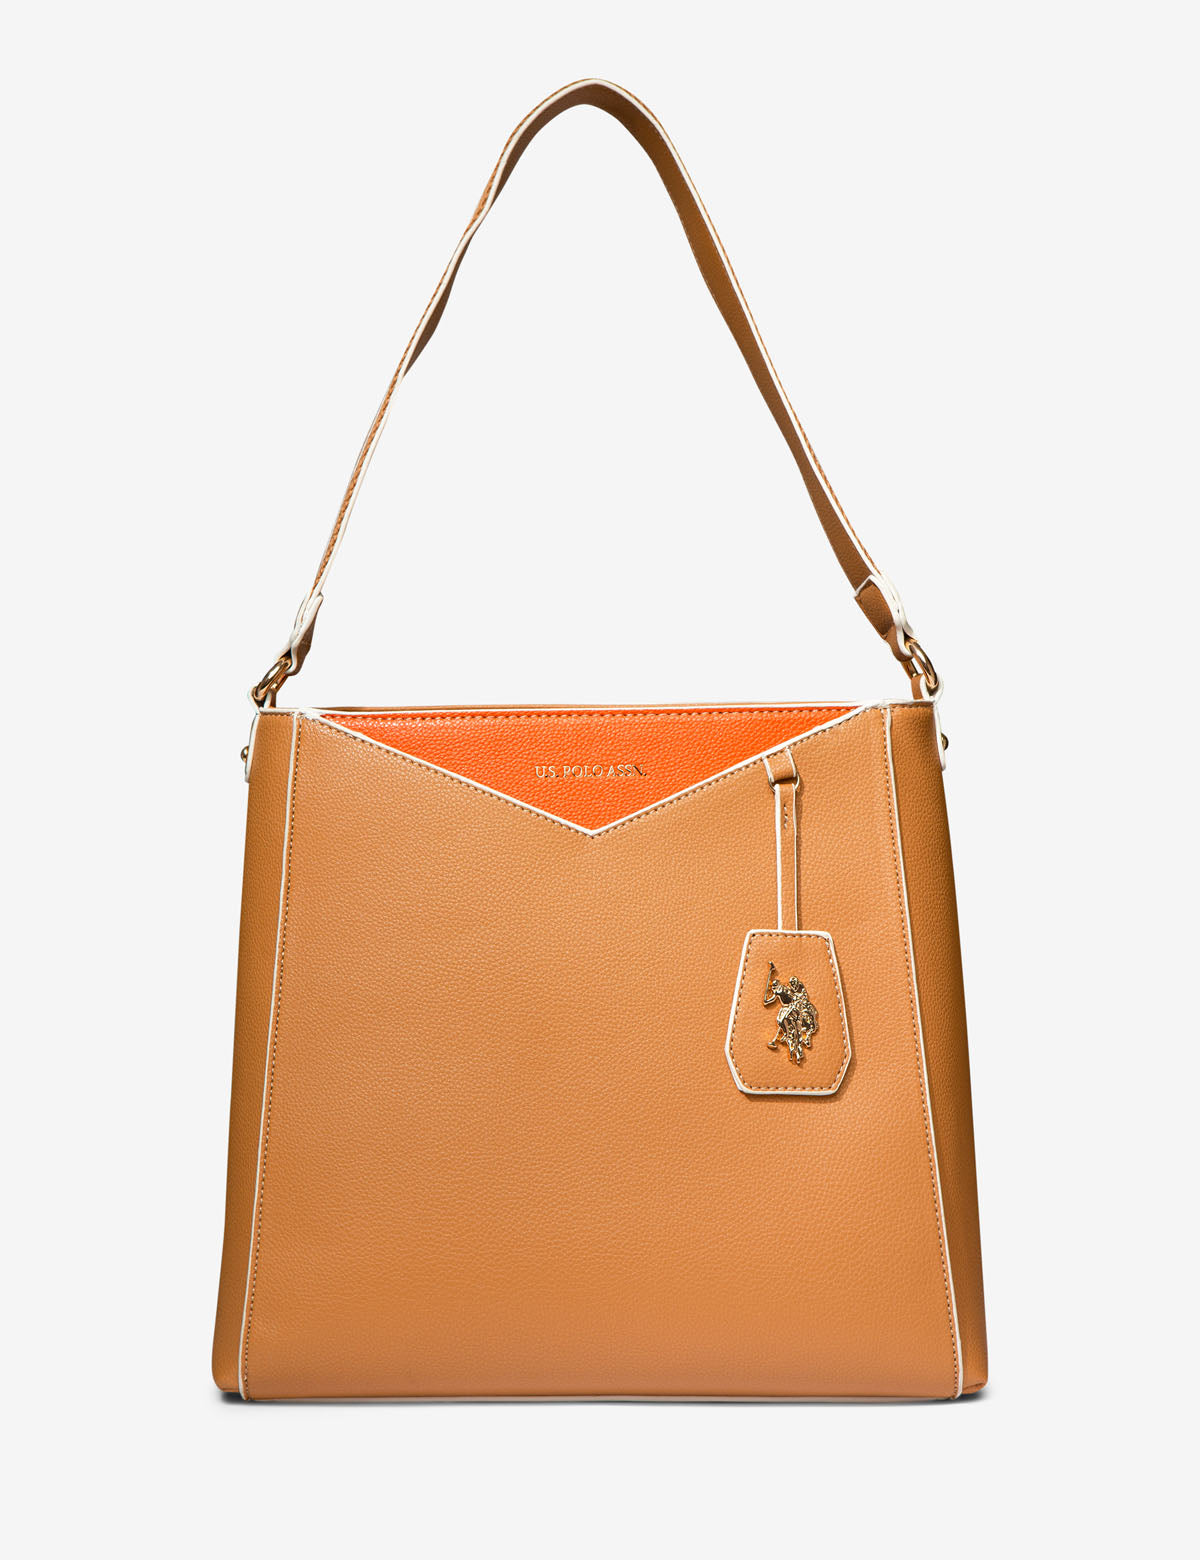 ENVELOPE STITCH HOBO BAG - U.S. Polo Assn.